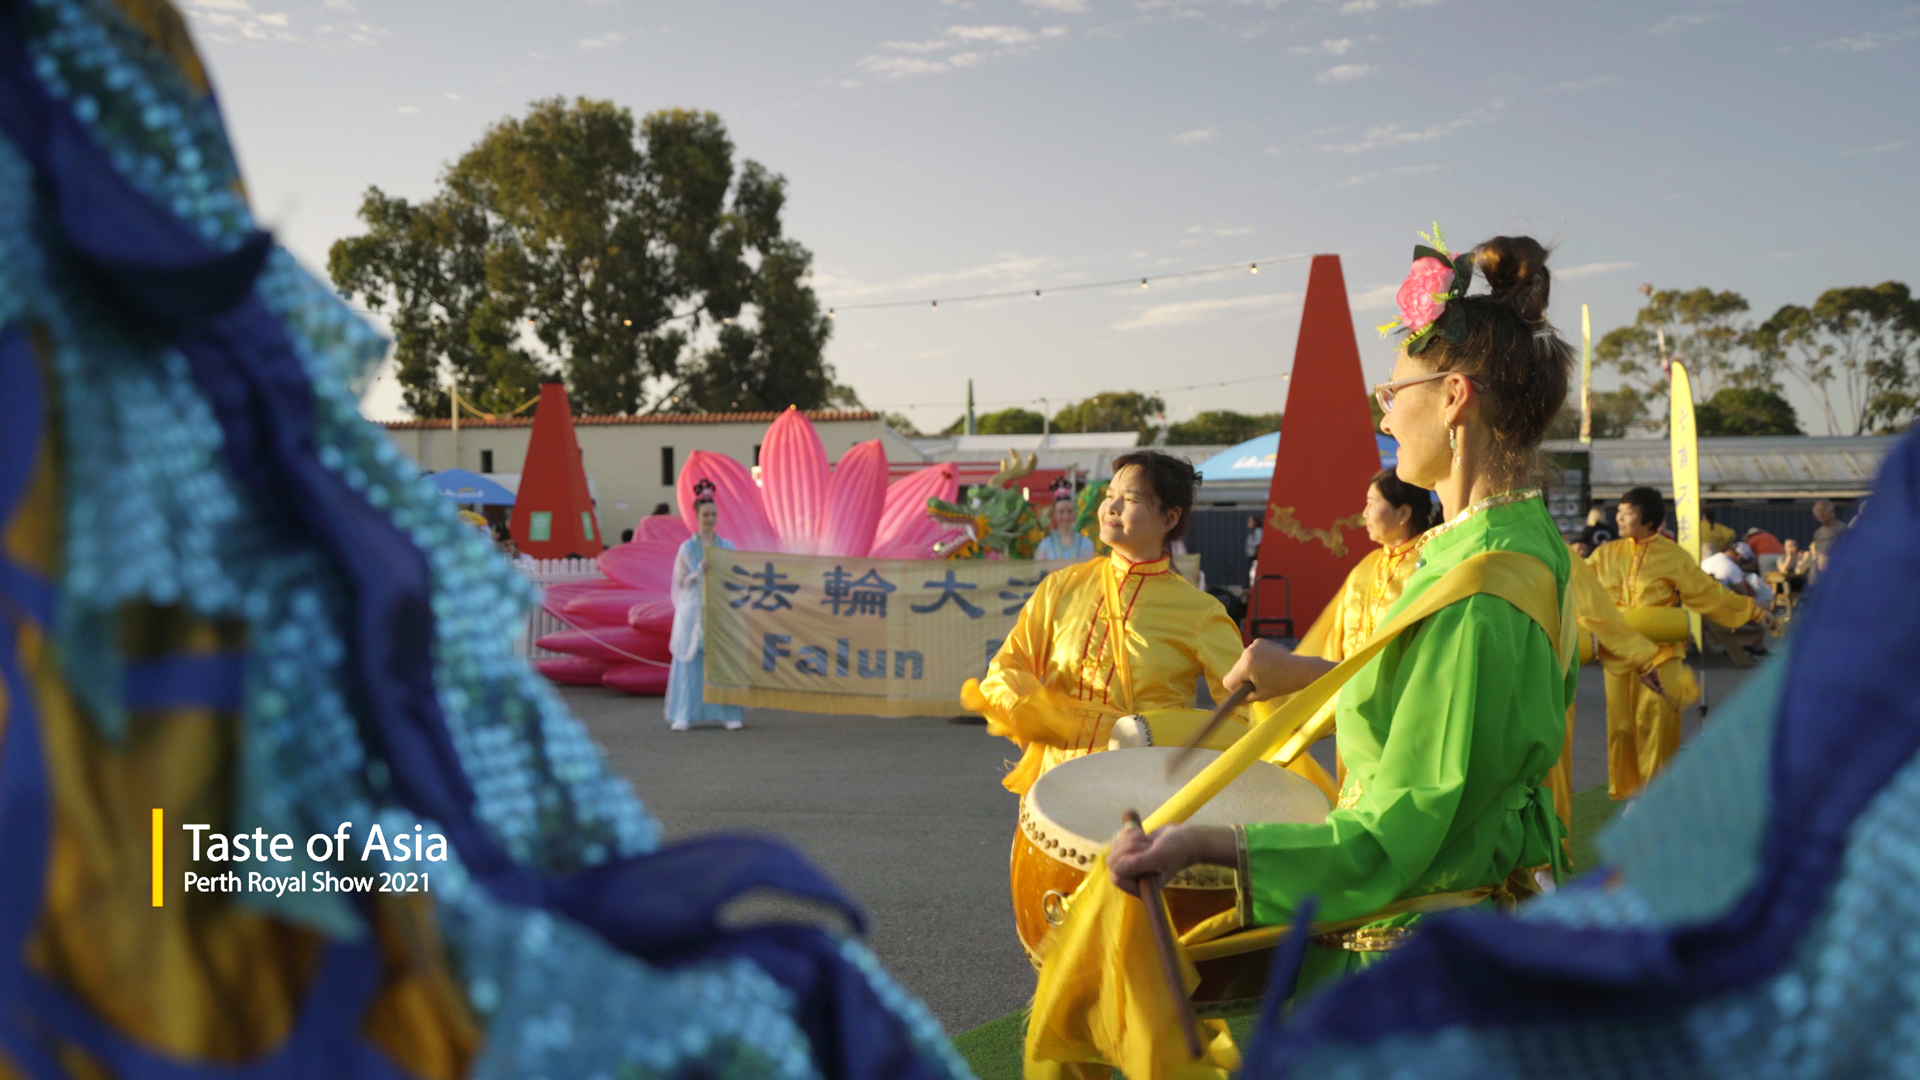 You are currently viewing Waist Drum and Dragon Performances at the Perth Royal Show 2021